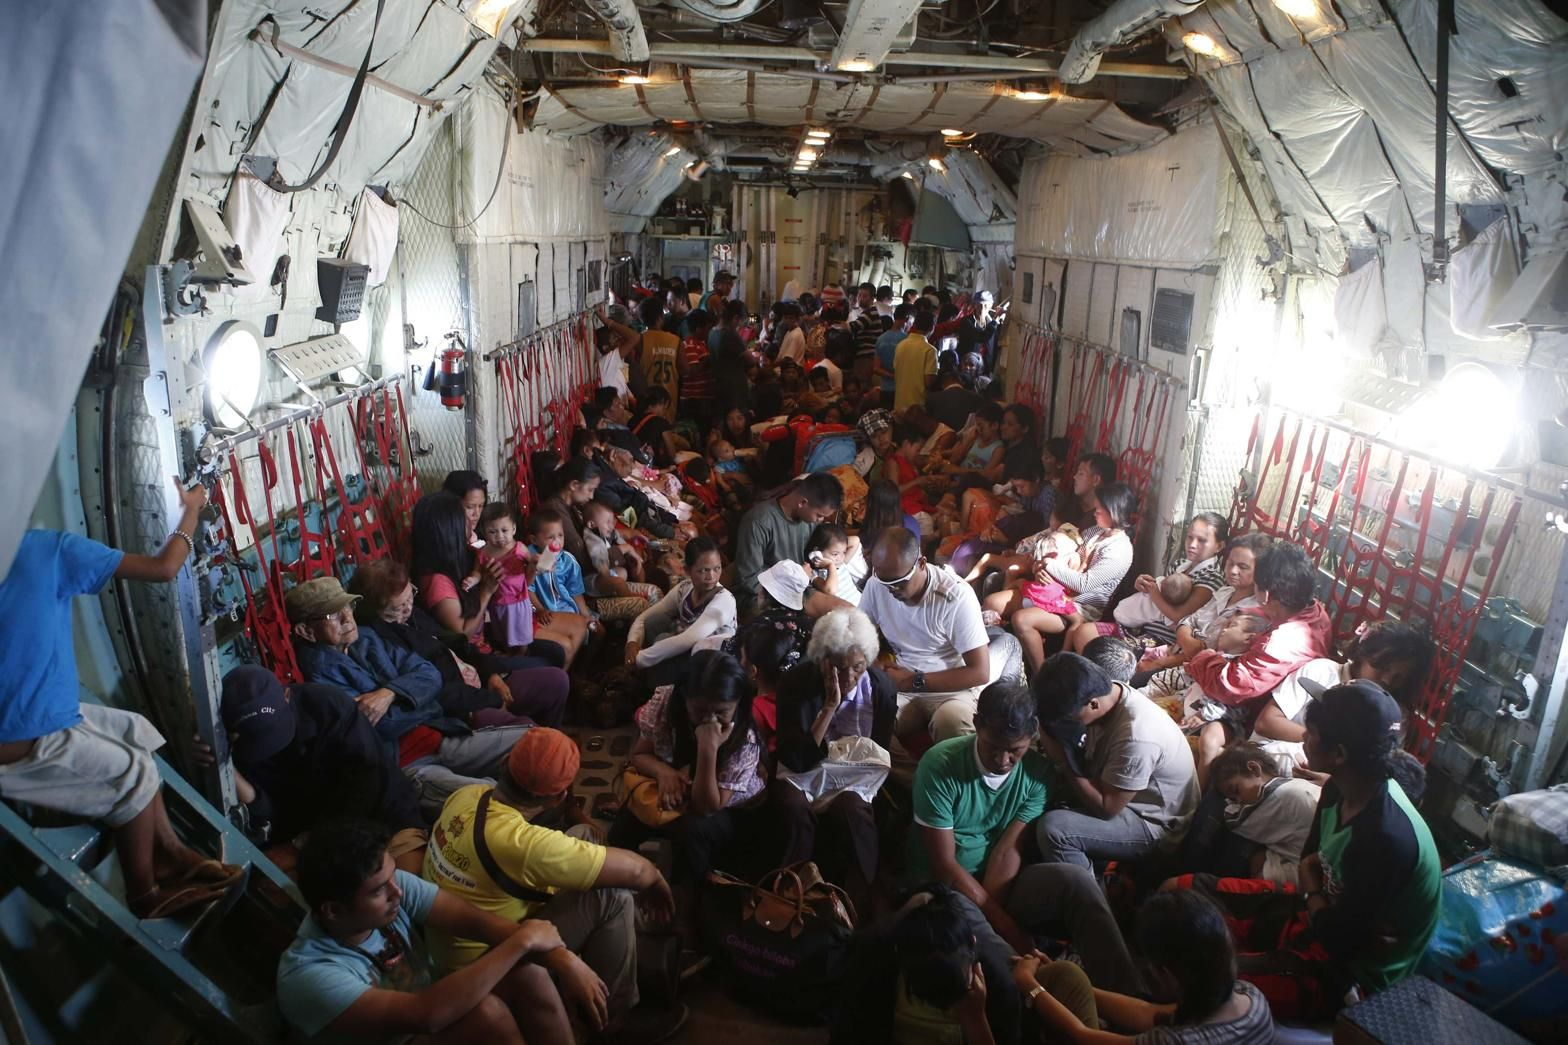 US Military assistance in Philippines The death toll from a powerful typhoon that swept the central Philippines nearly doubled overnight, reaching 4,000, as helicopters from a U.S. aircraft carrier and other naval ships began flying food, water and medical teams to ravaged more